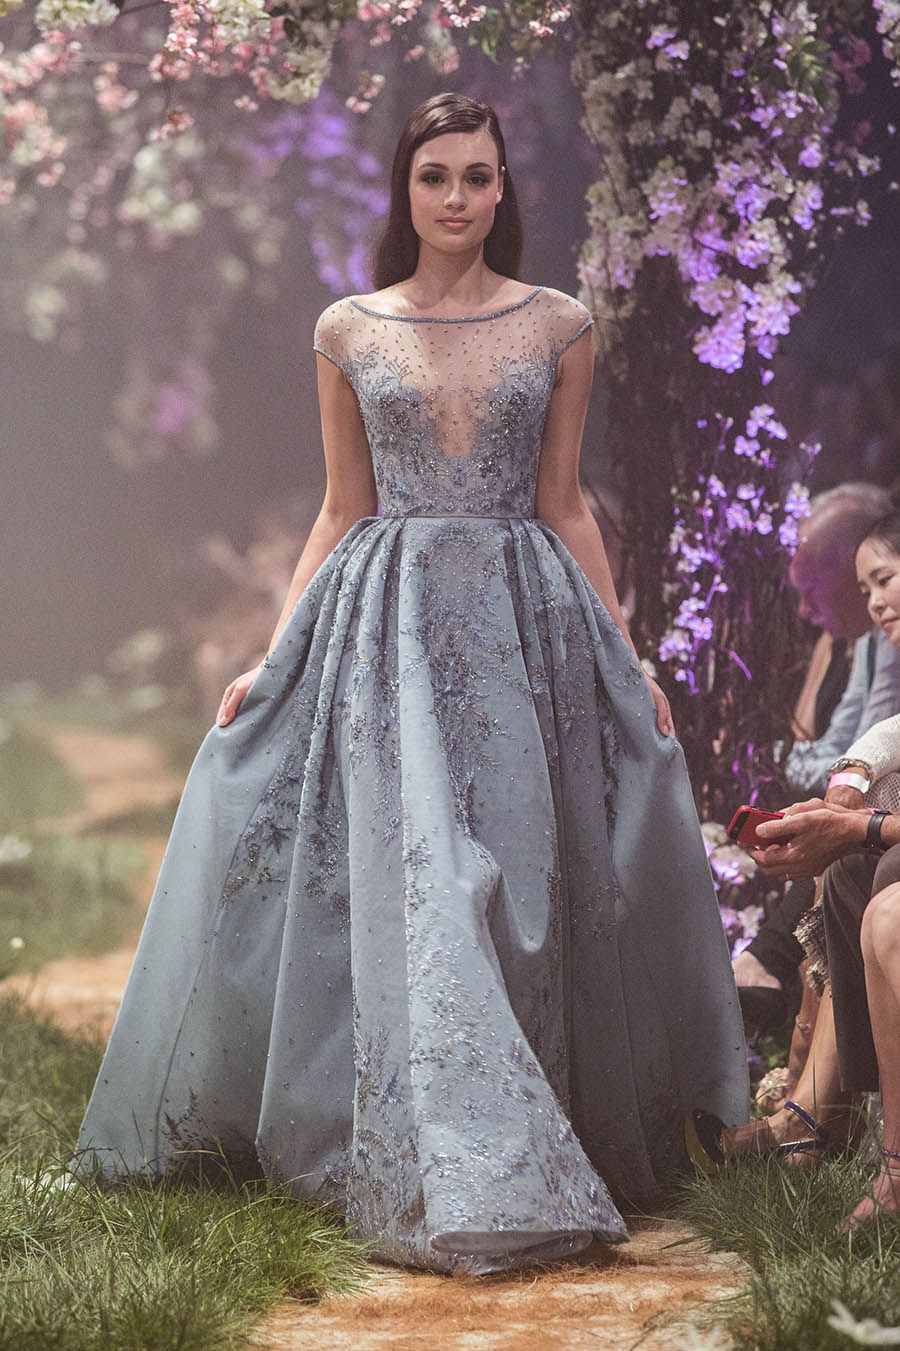 """e6a73190744 Cinderella-inspired sleeveless wedding gown with beautiful floral  embroidery details    """"Once Upon a Dream"""" – a fairytale collaboration  between Paolo ..."""